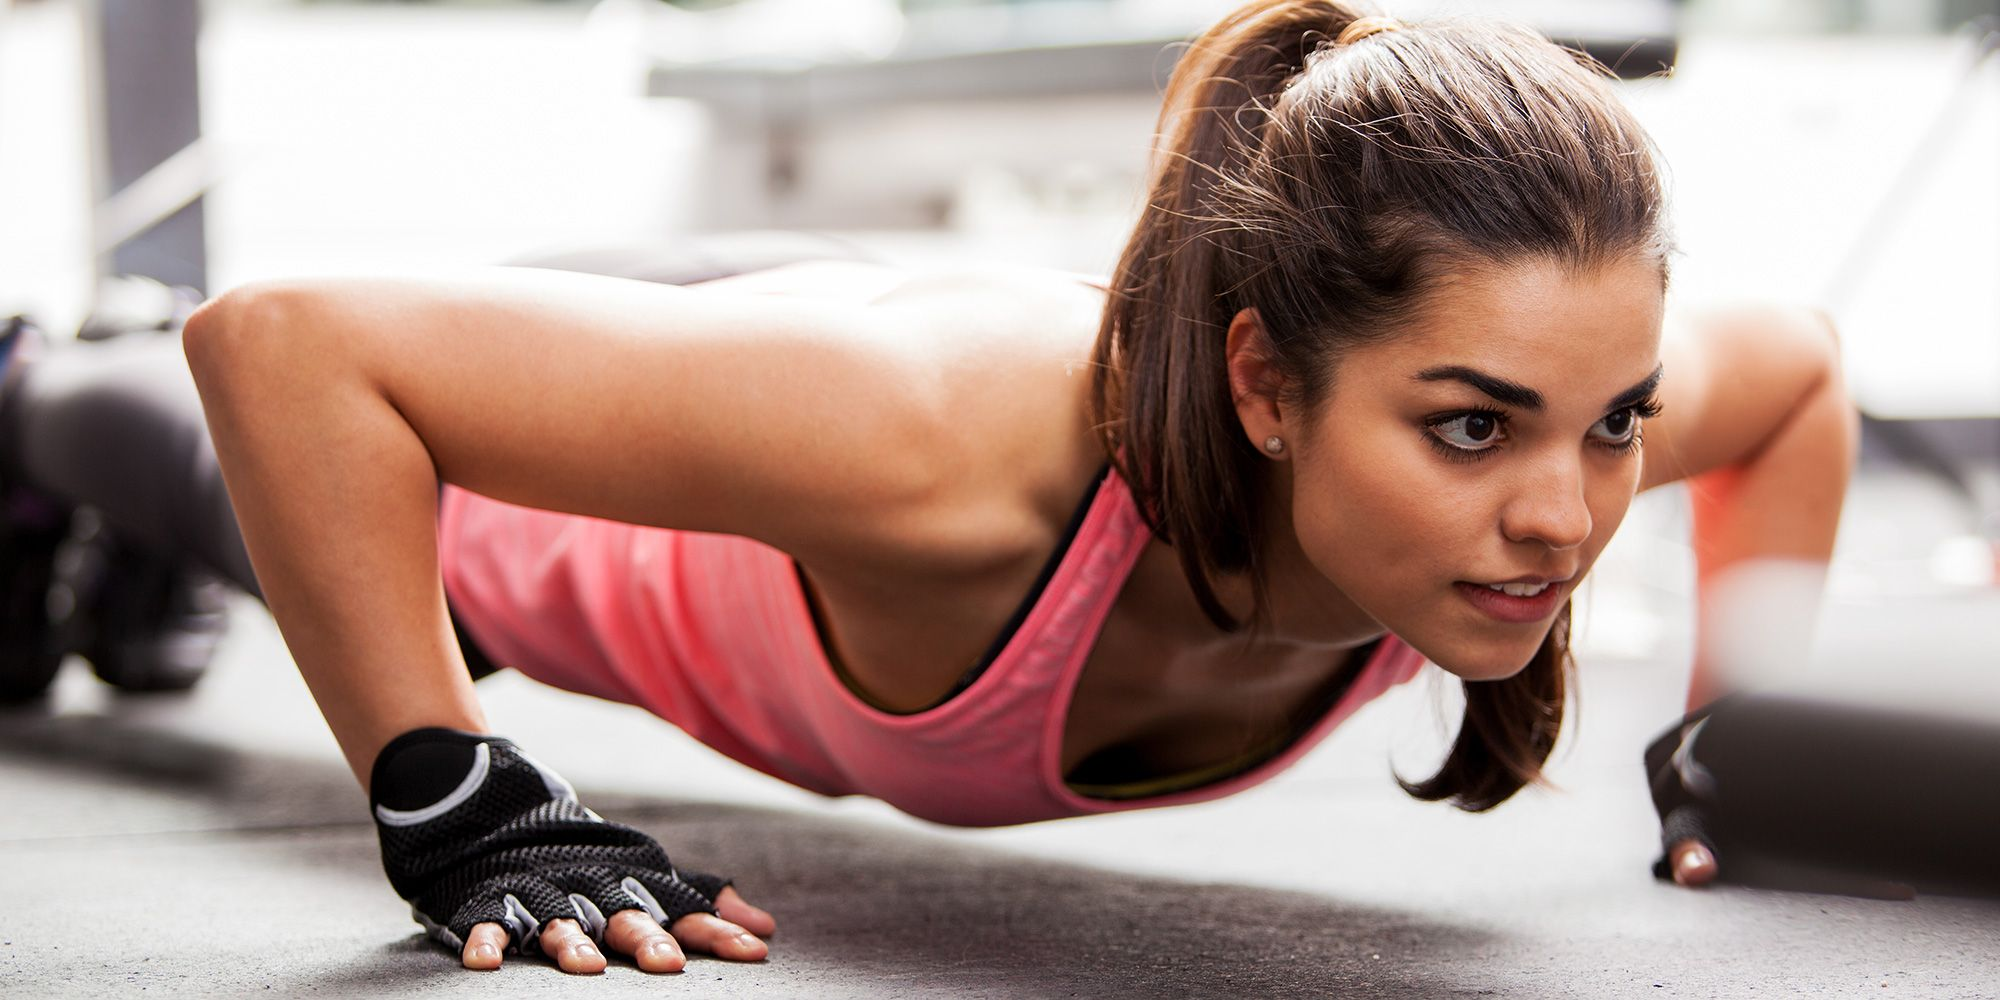 If You Have 3 Minutes, You Have Time For This Workout